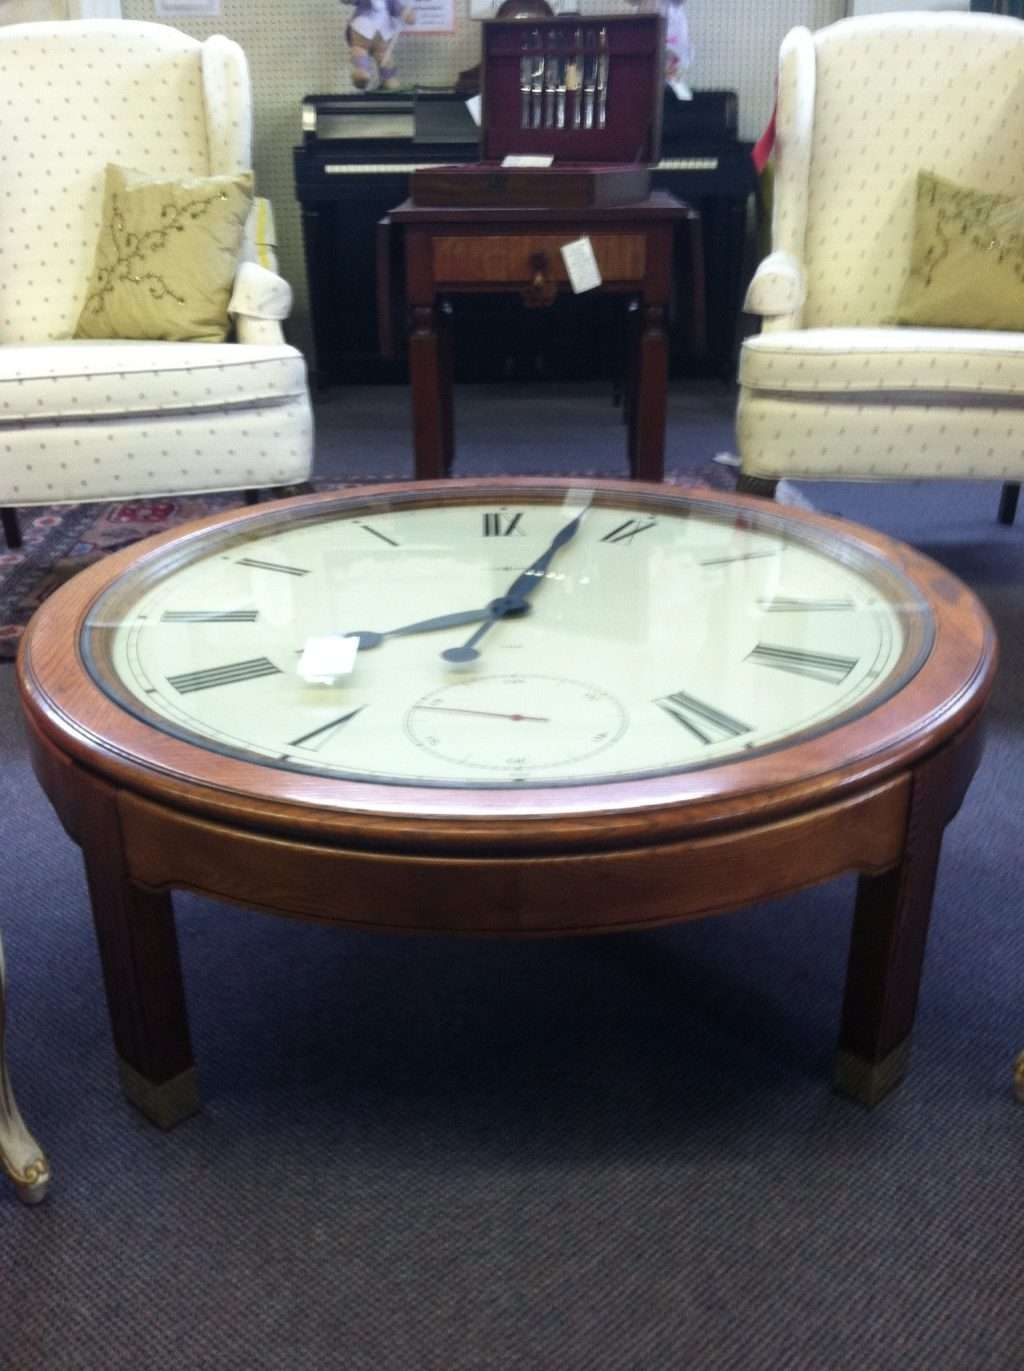 Most Recently Released Clock Coffee Tables Round Shaped In Home ~ Clock Coffee Table For Sale Round With Oval Ridgeway (View 12 of 20)